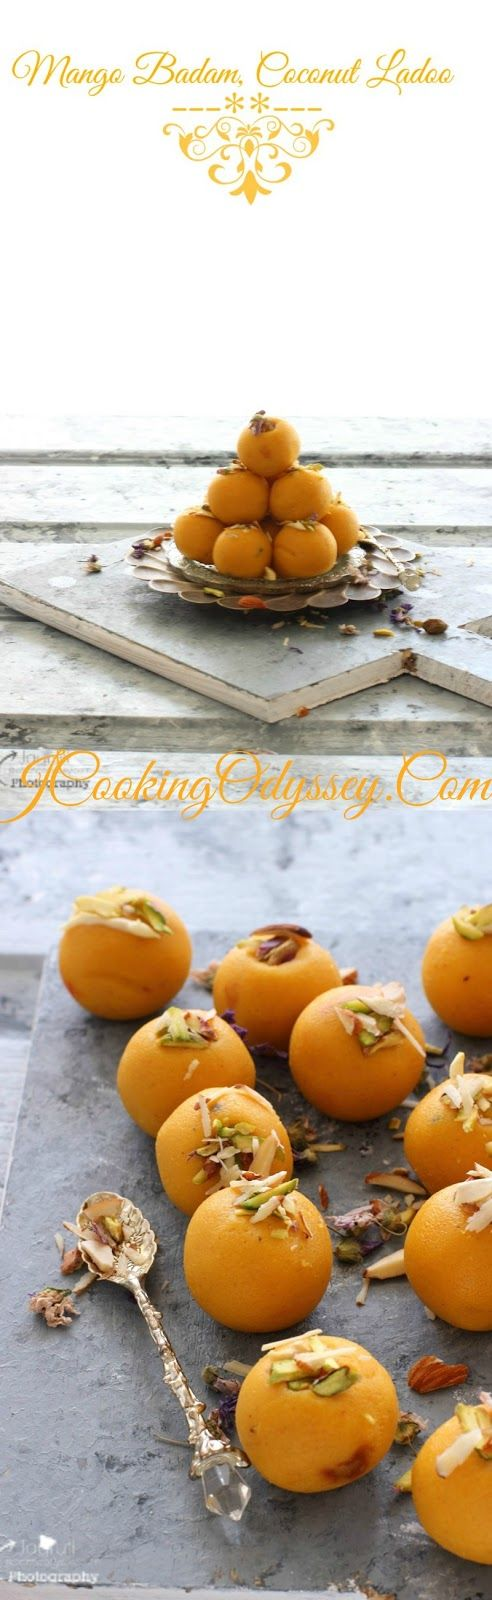 Jagruti's Cooking Odyssey: Mango, Badam, Coconut Ladoo - The season of fast and feast is here !